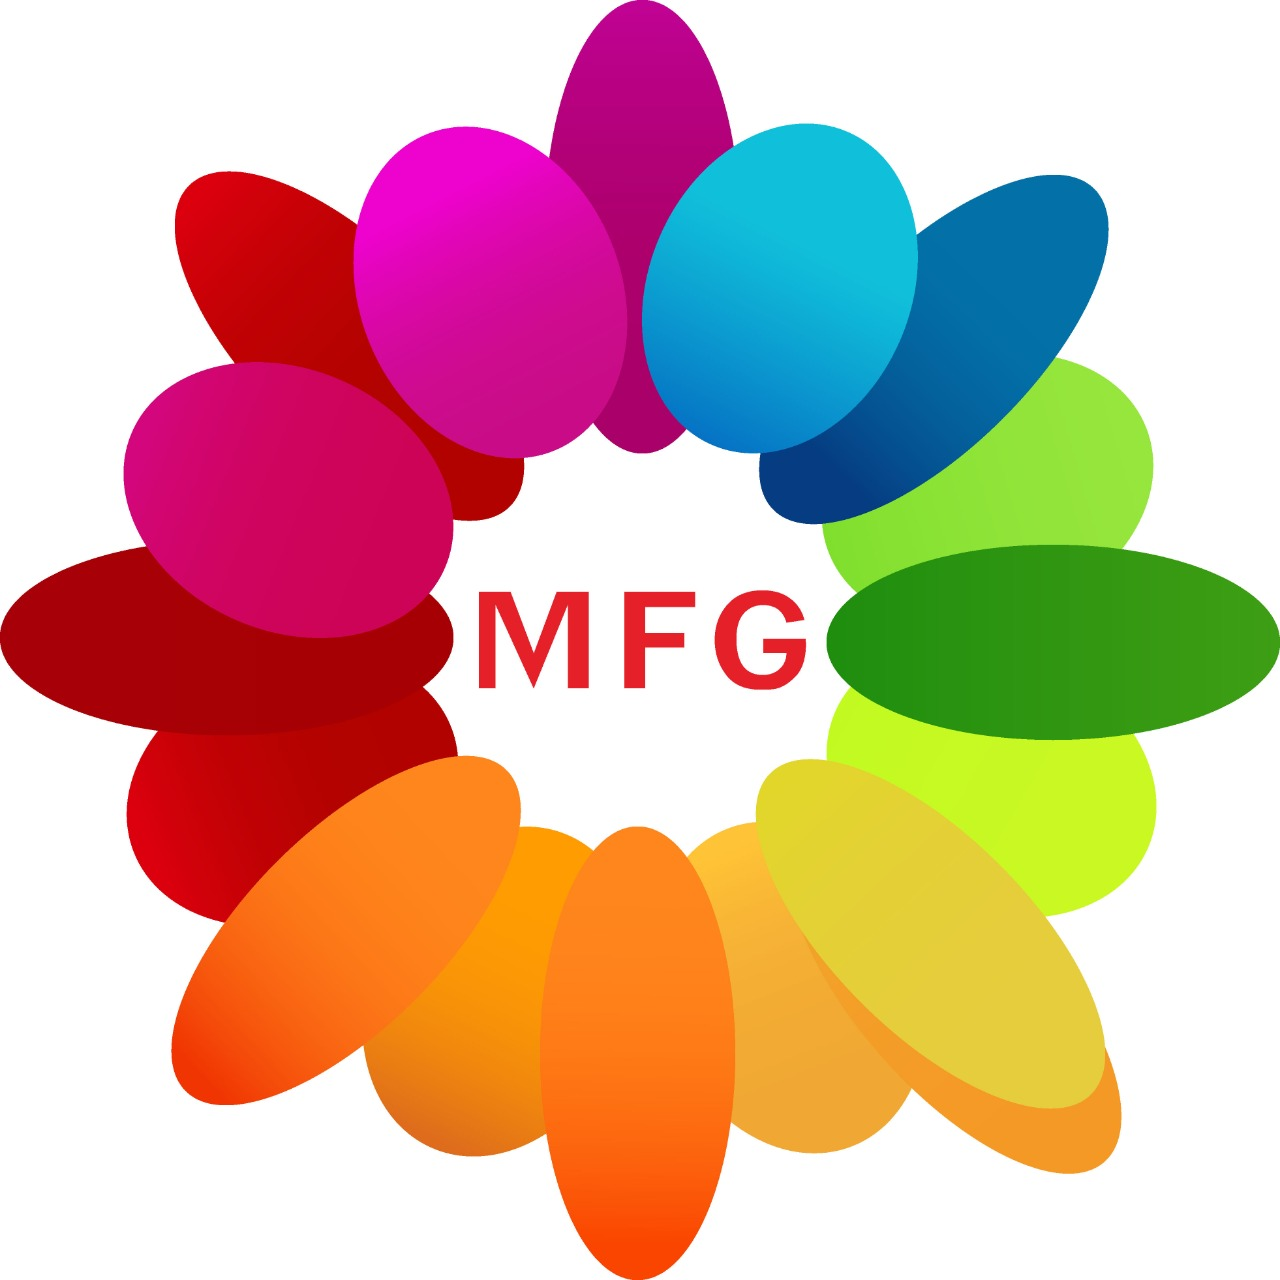 Bunch of 20 red and yellow carnations with 1 pound mix fruit premium quality cake with 1 feet height teddy bear